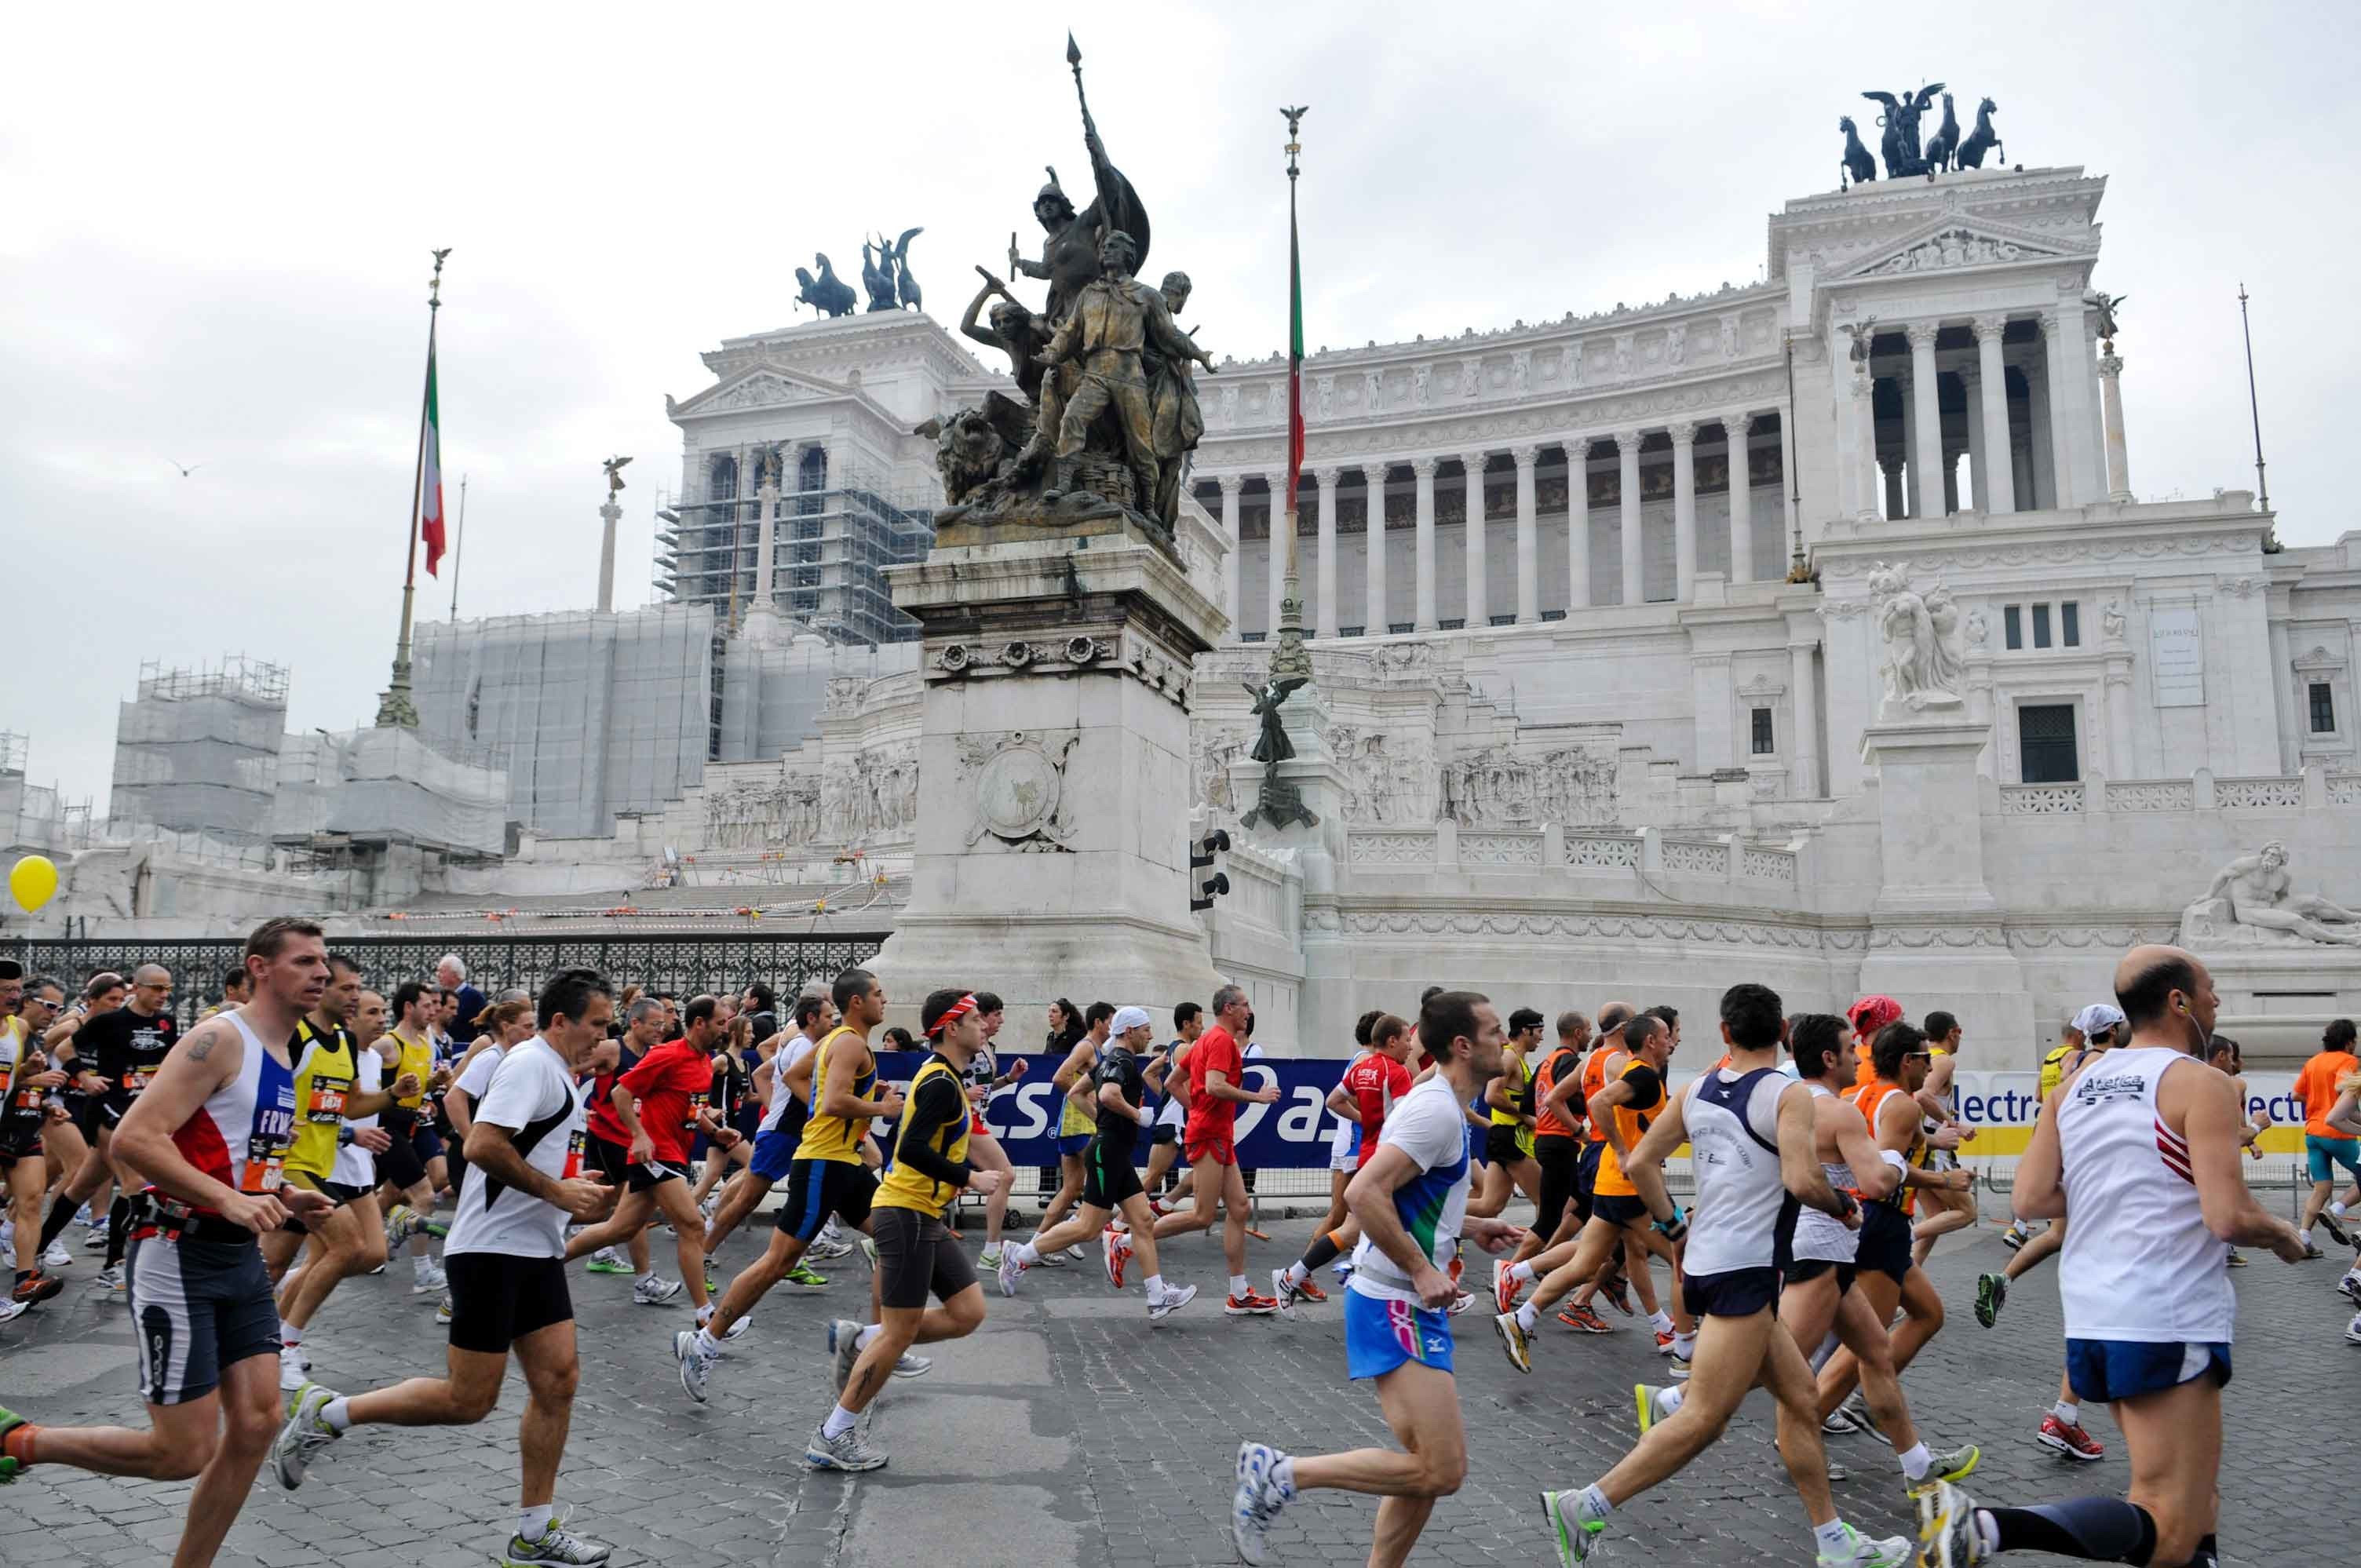 A strong Elite Field will take on the 24th Annual Rome Marathon